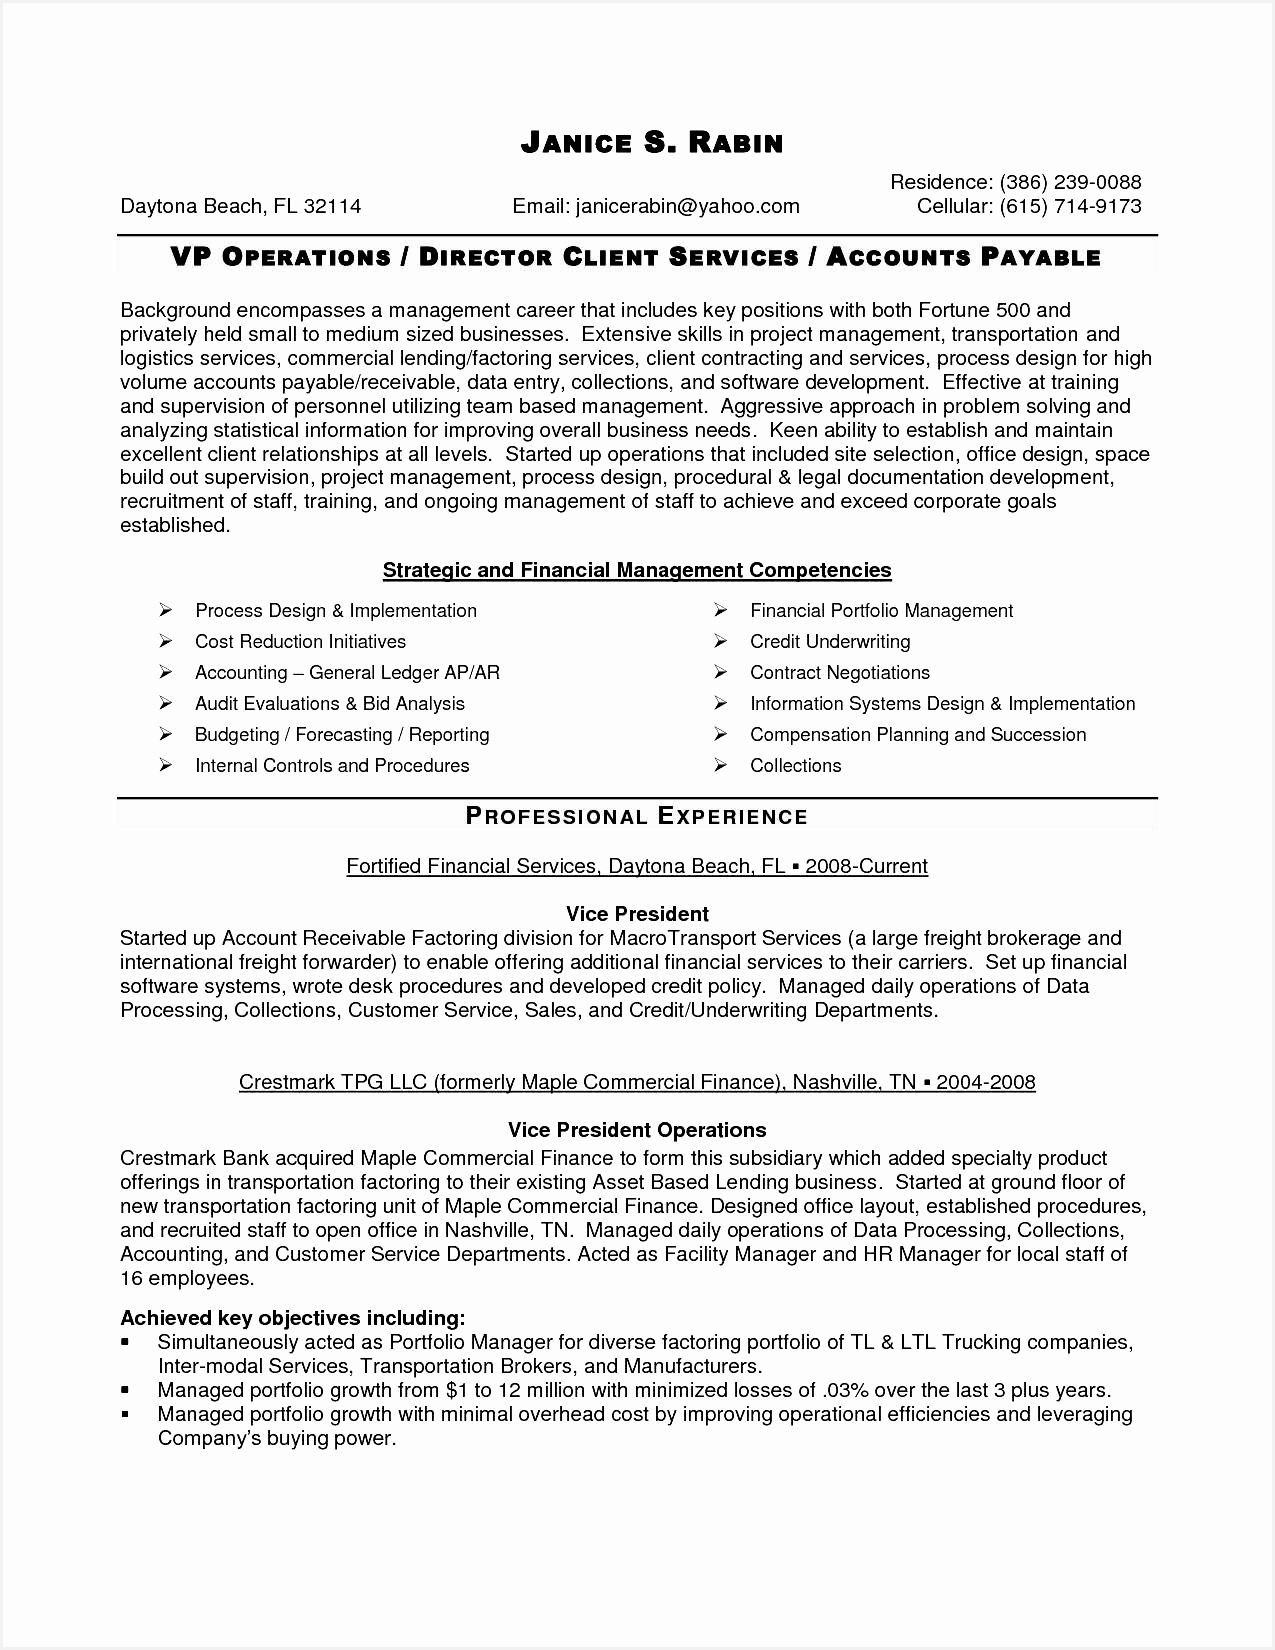 Easy Resume Template Reseume Templates Fresh Resume Templates with formatted Resume 0d16501275